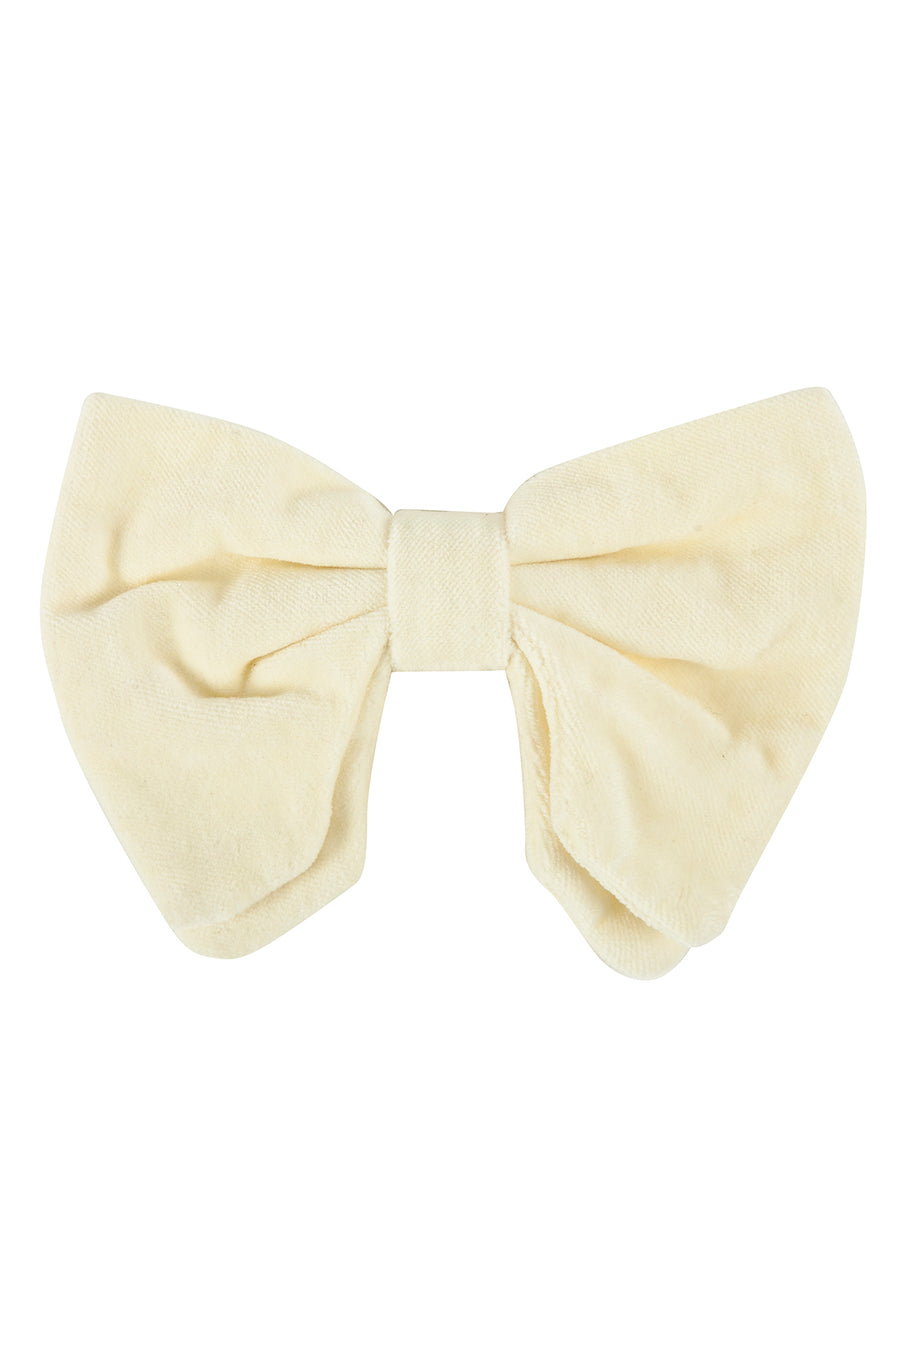 Avant Garde Bowtie - Ivory Velvet - PROJECT 6, modest fashion